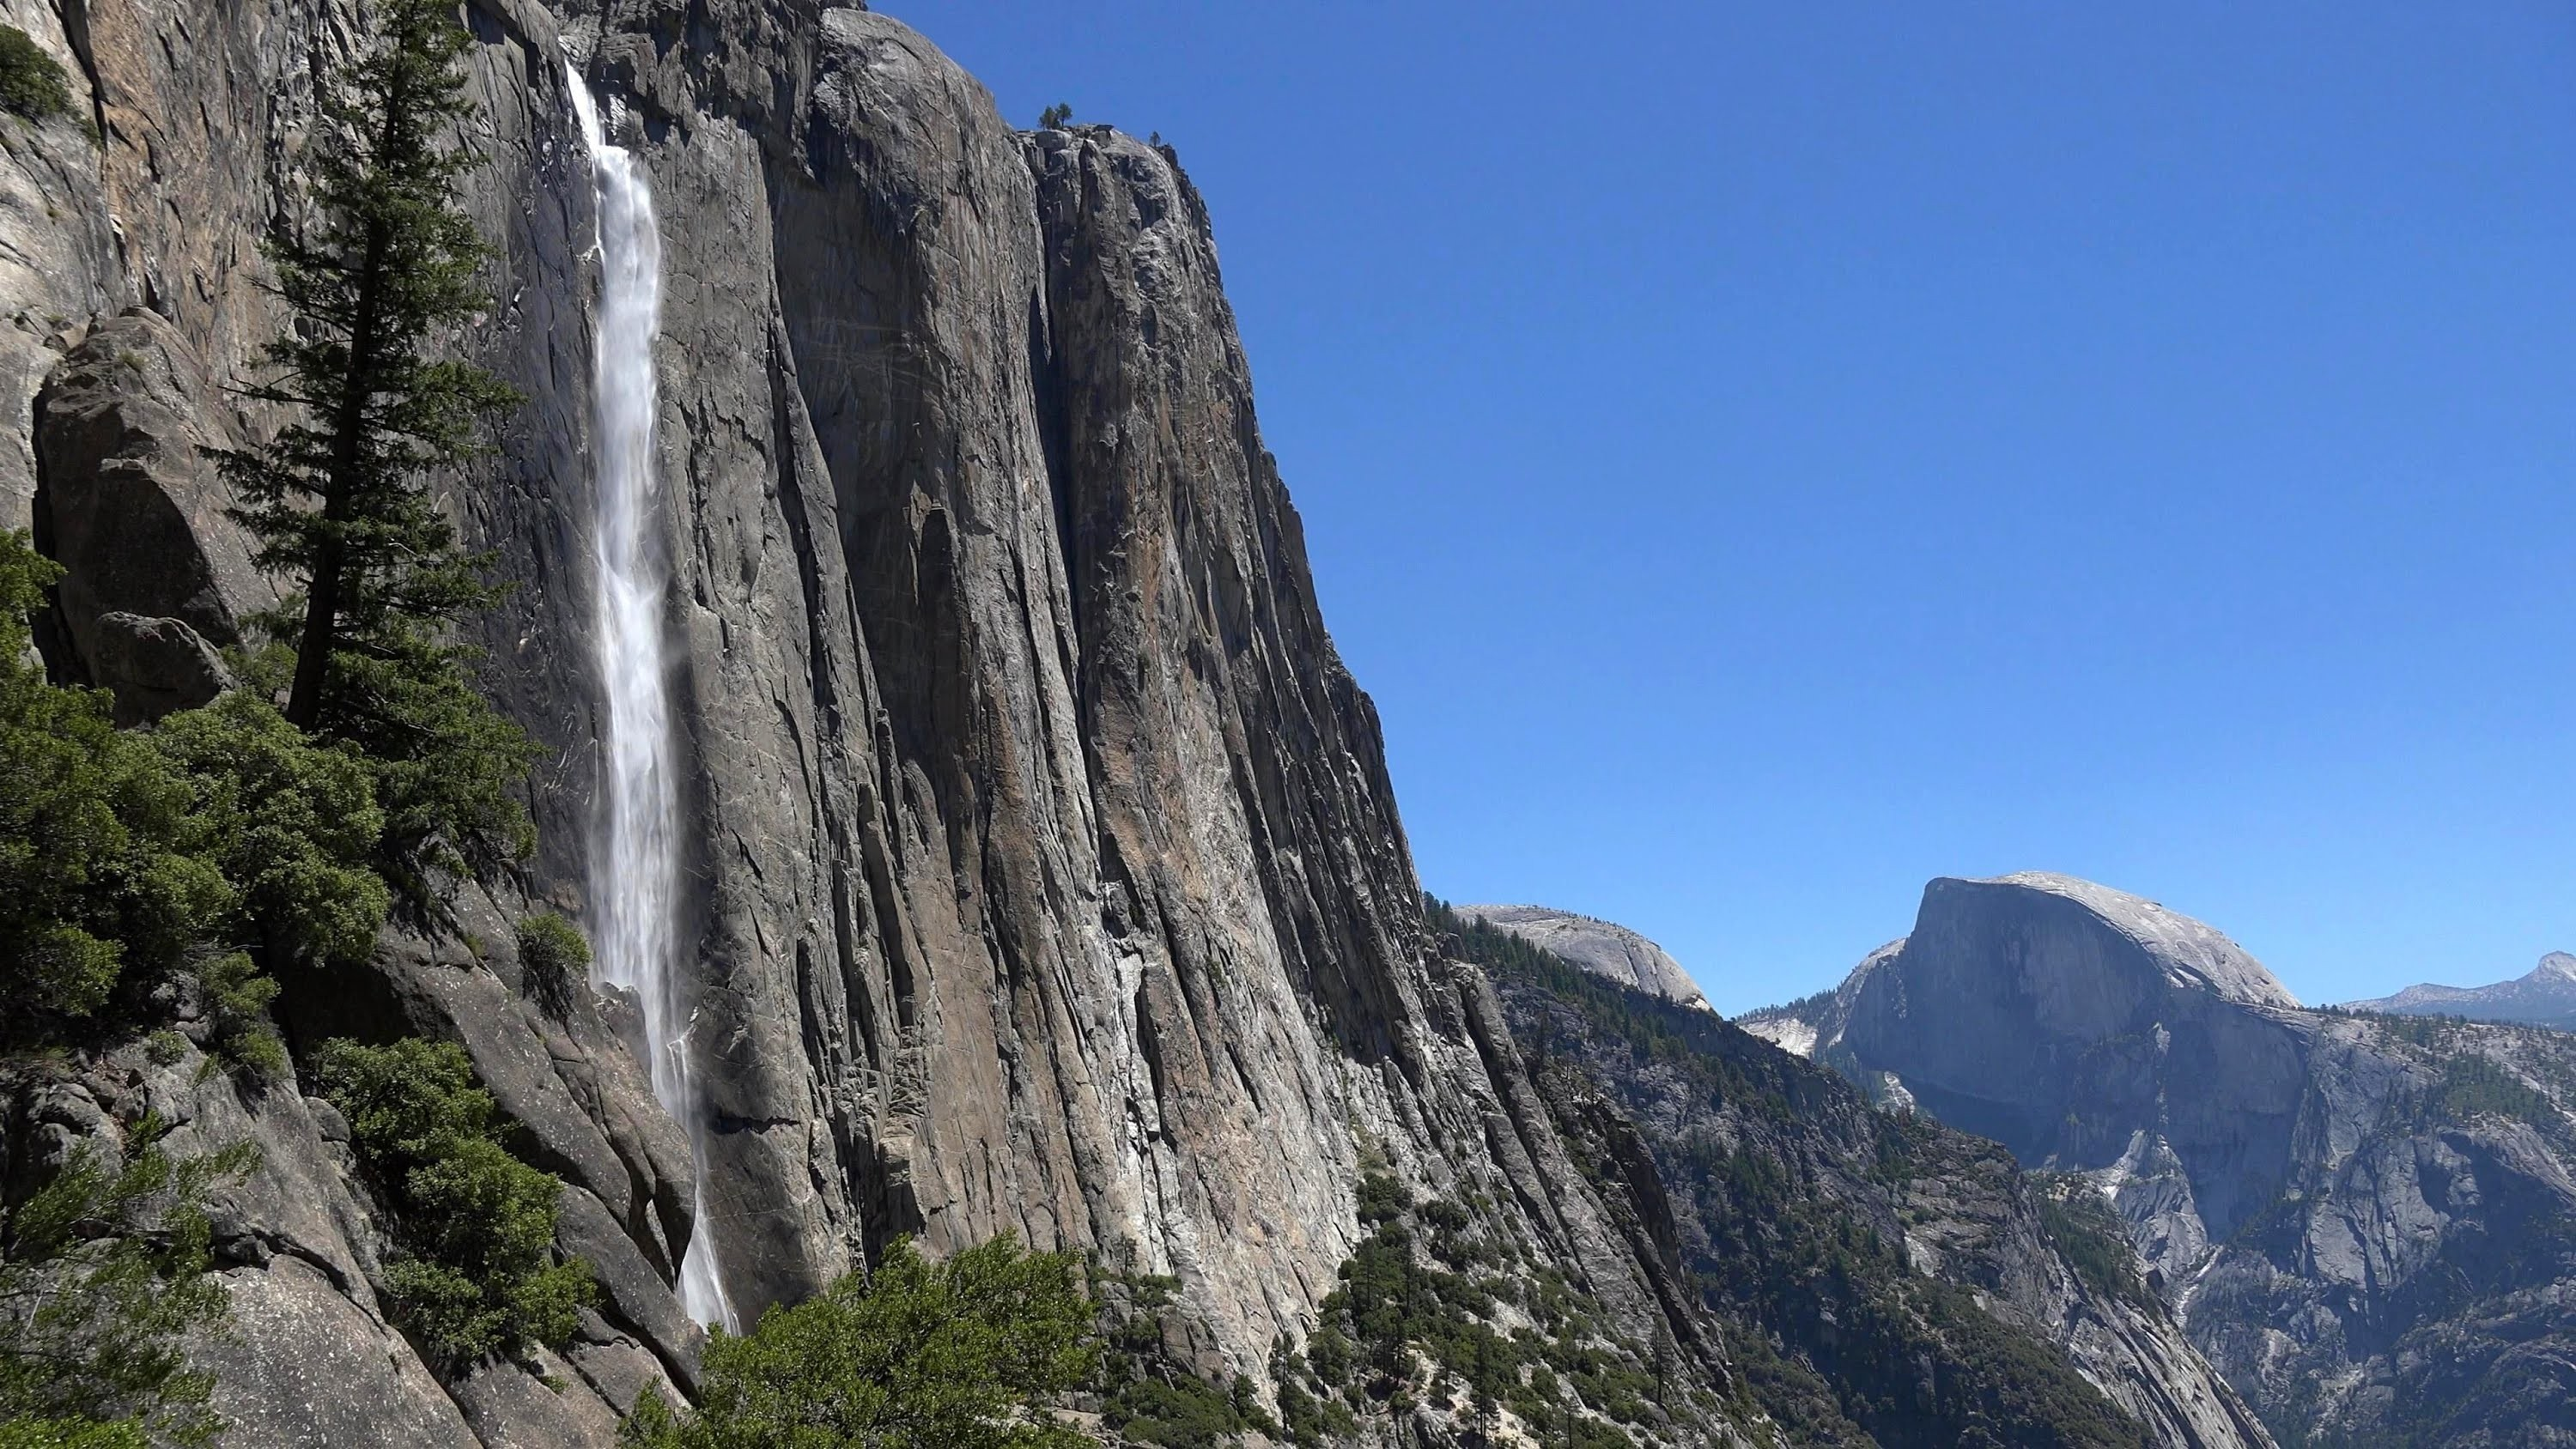 3000x1688 Os X Yosemite Wallpaper 4k Inspirational 4k Yosemite Wallpapers High  Quality Of Os X Yosemite Wallpaper